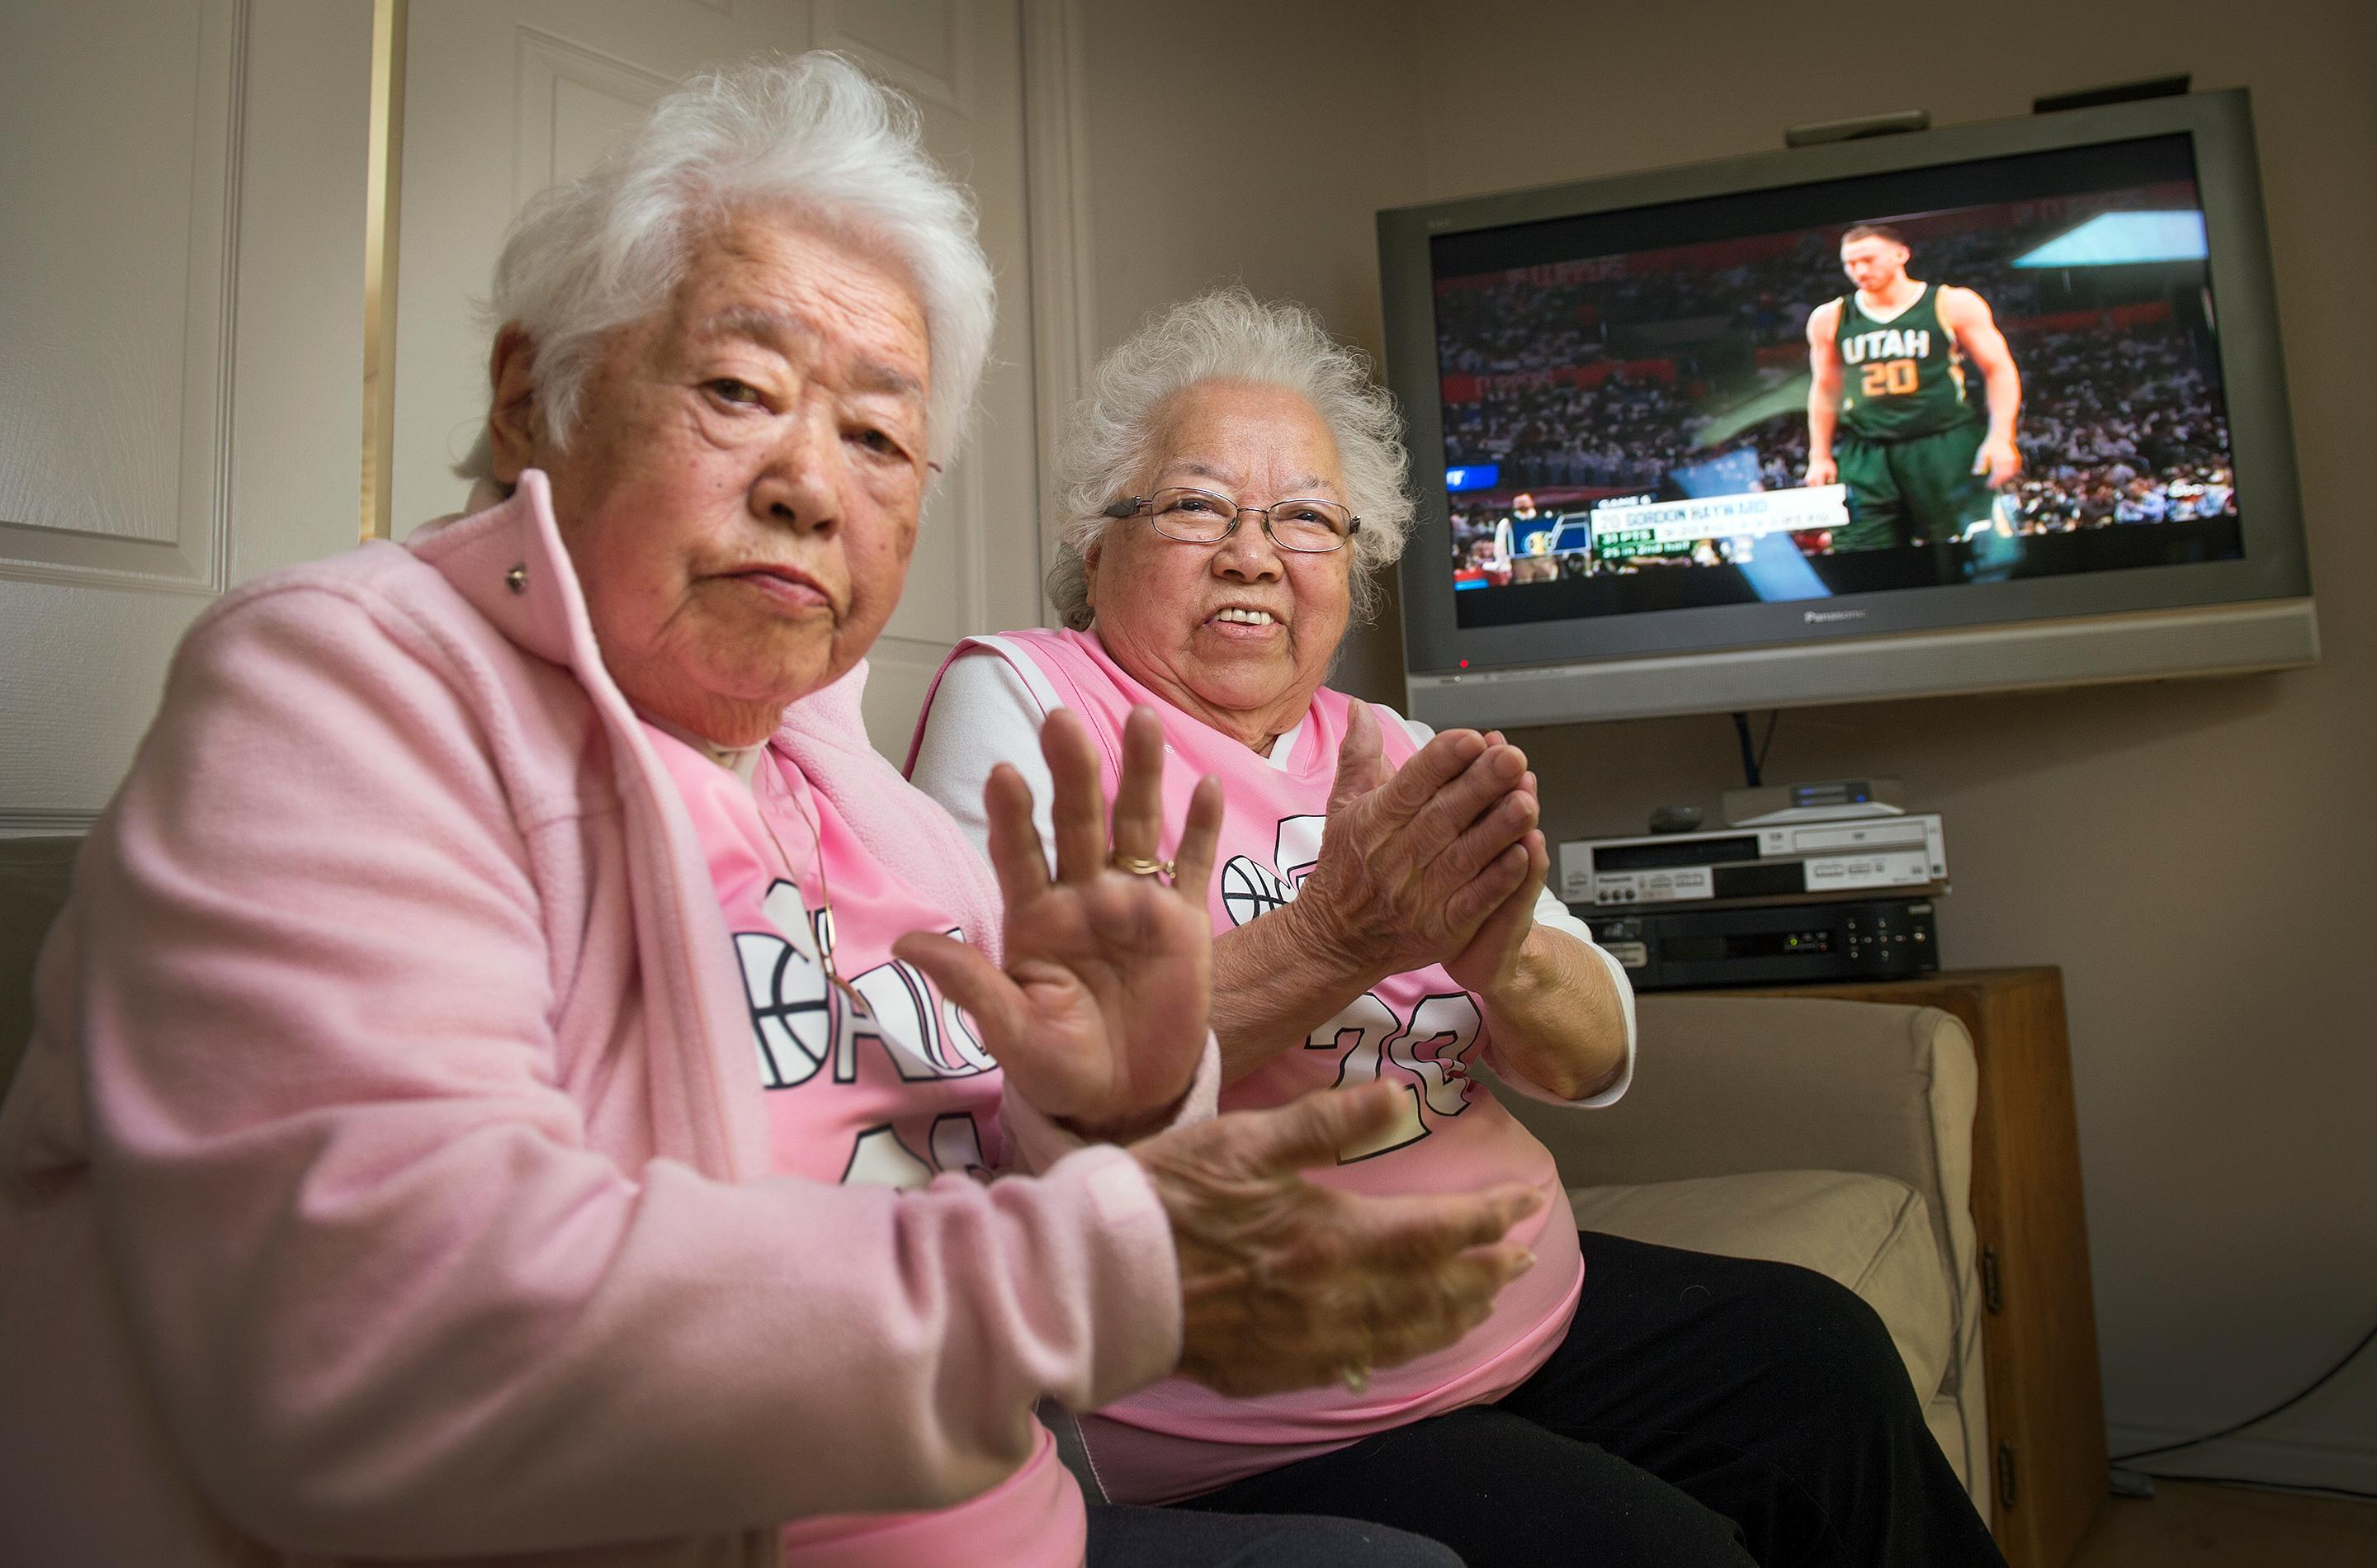 "The ""Pink Grandmas"", Yeiko Hommas and Keiko Mori sit in Keiko's family room on Sunday, April 30, 2017 as game 7 of the playoff series between the Utah Jazz and the Los Angeles Clippers broadcasts. Utah Jazz forward Gordon Hayward (20), a favorite player of theirs whose play always elicits applause from the two.  (Leah Hogsten/The Salt Lake Tribune via AP)"